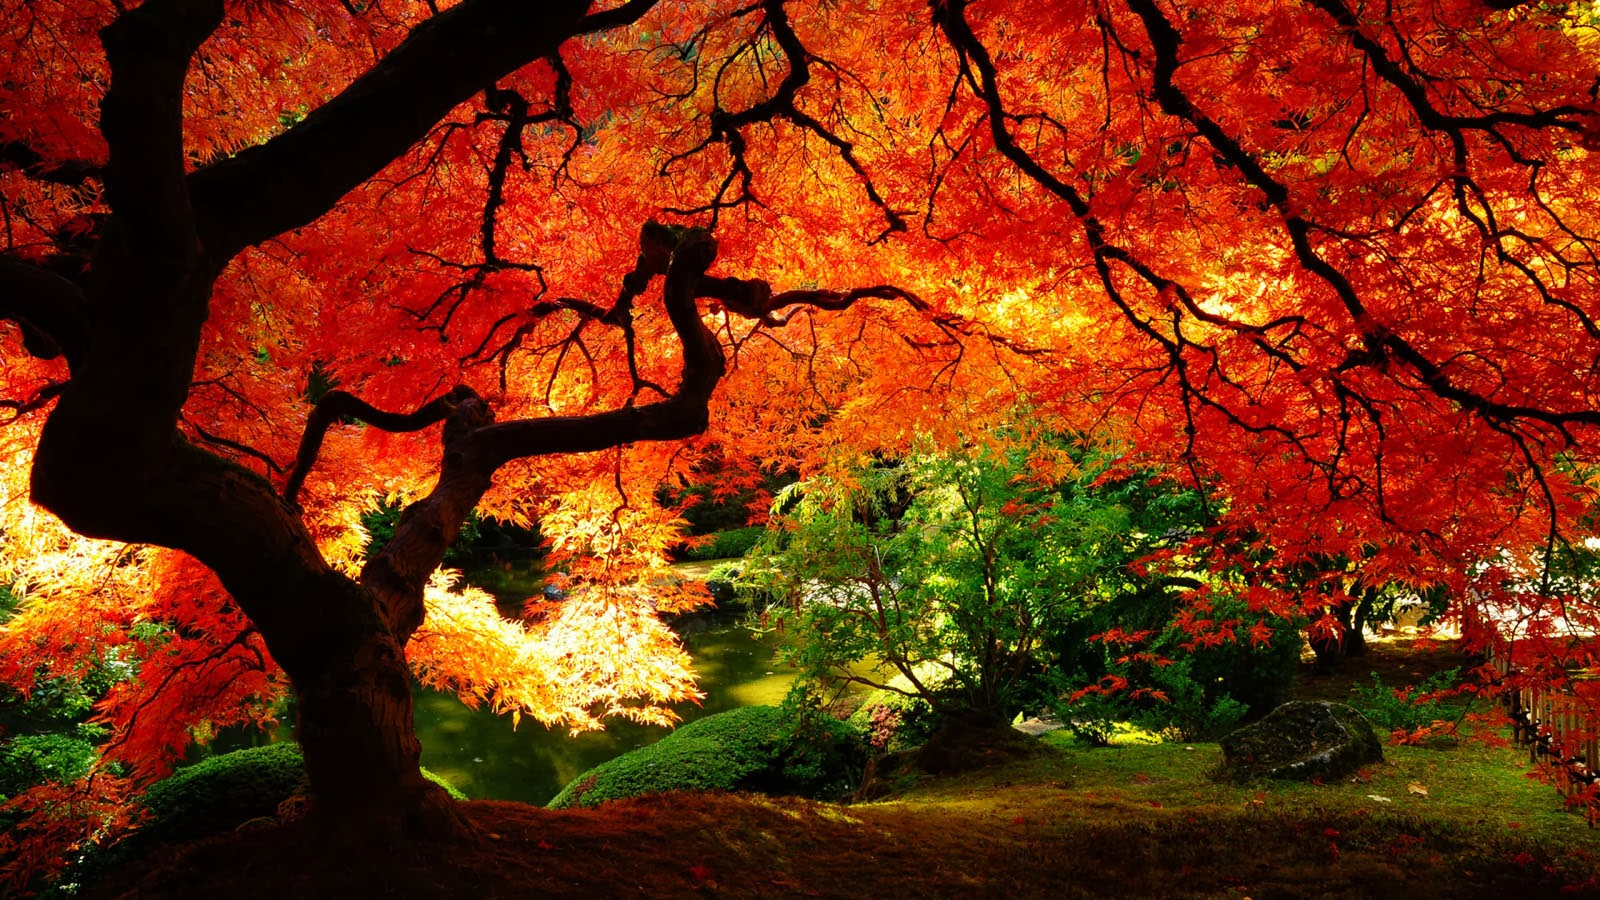 Nature Desktop Backgrounds Wallpapers - HD Wallpapers Blog